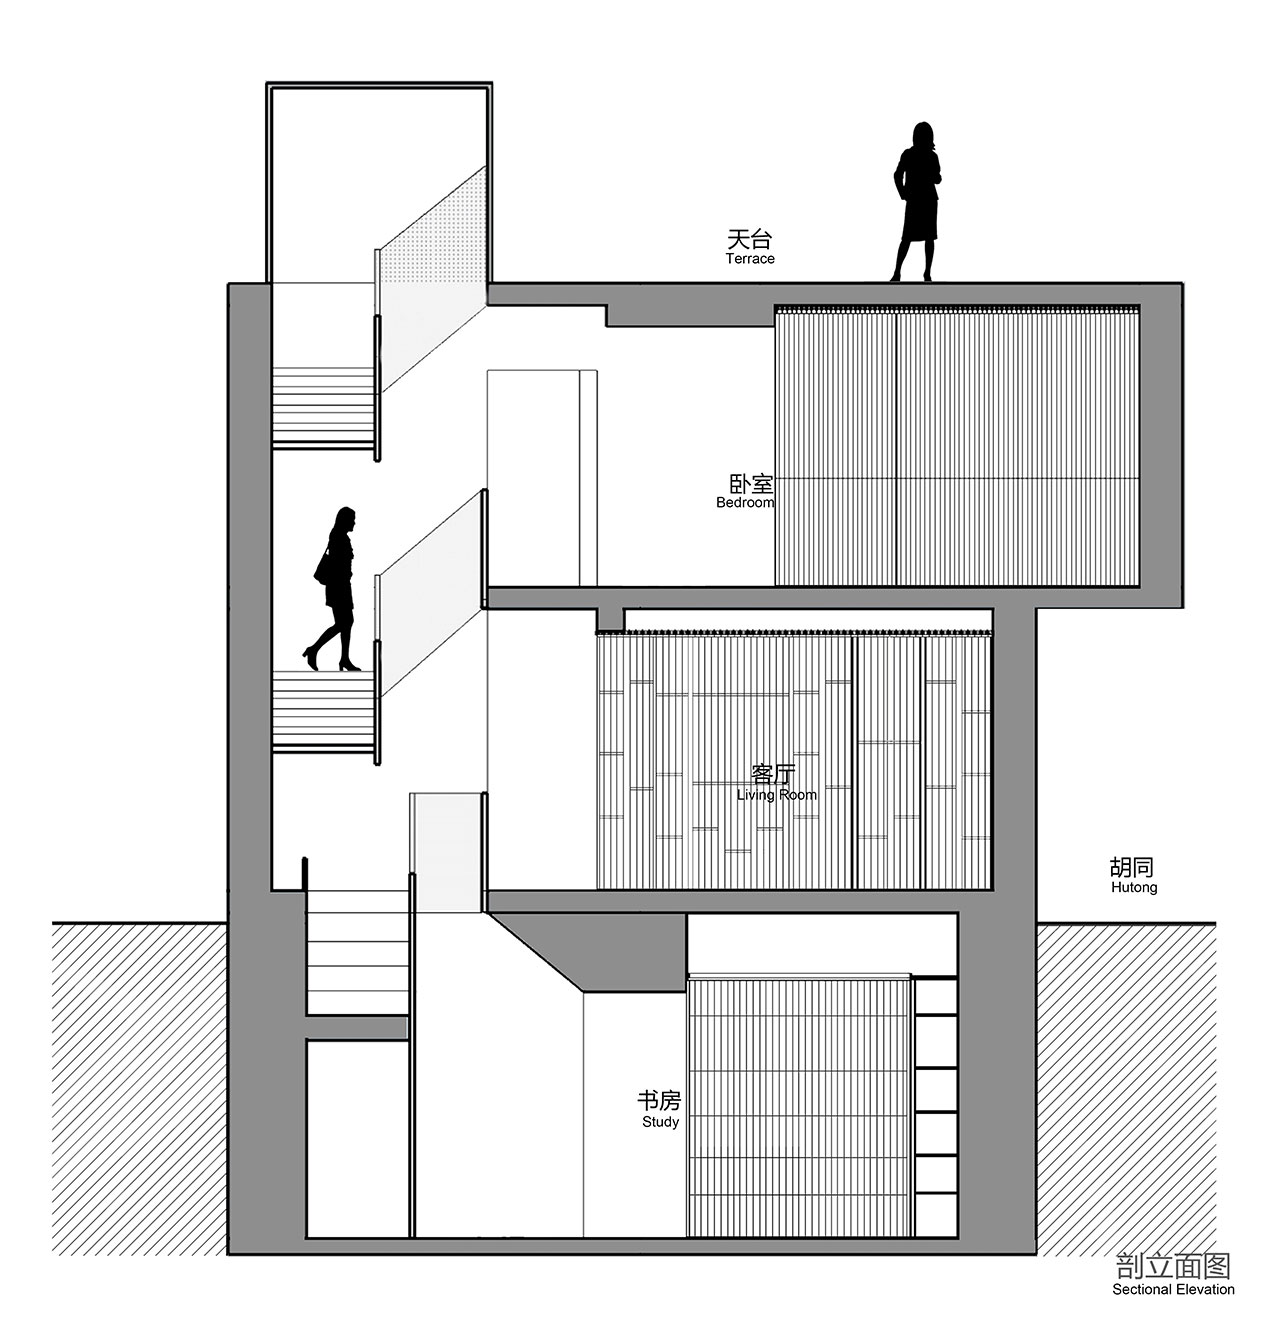 Sectional Elevation Plan © ARCH STUDIO.